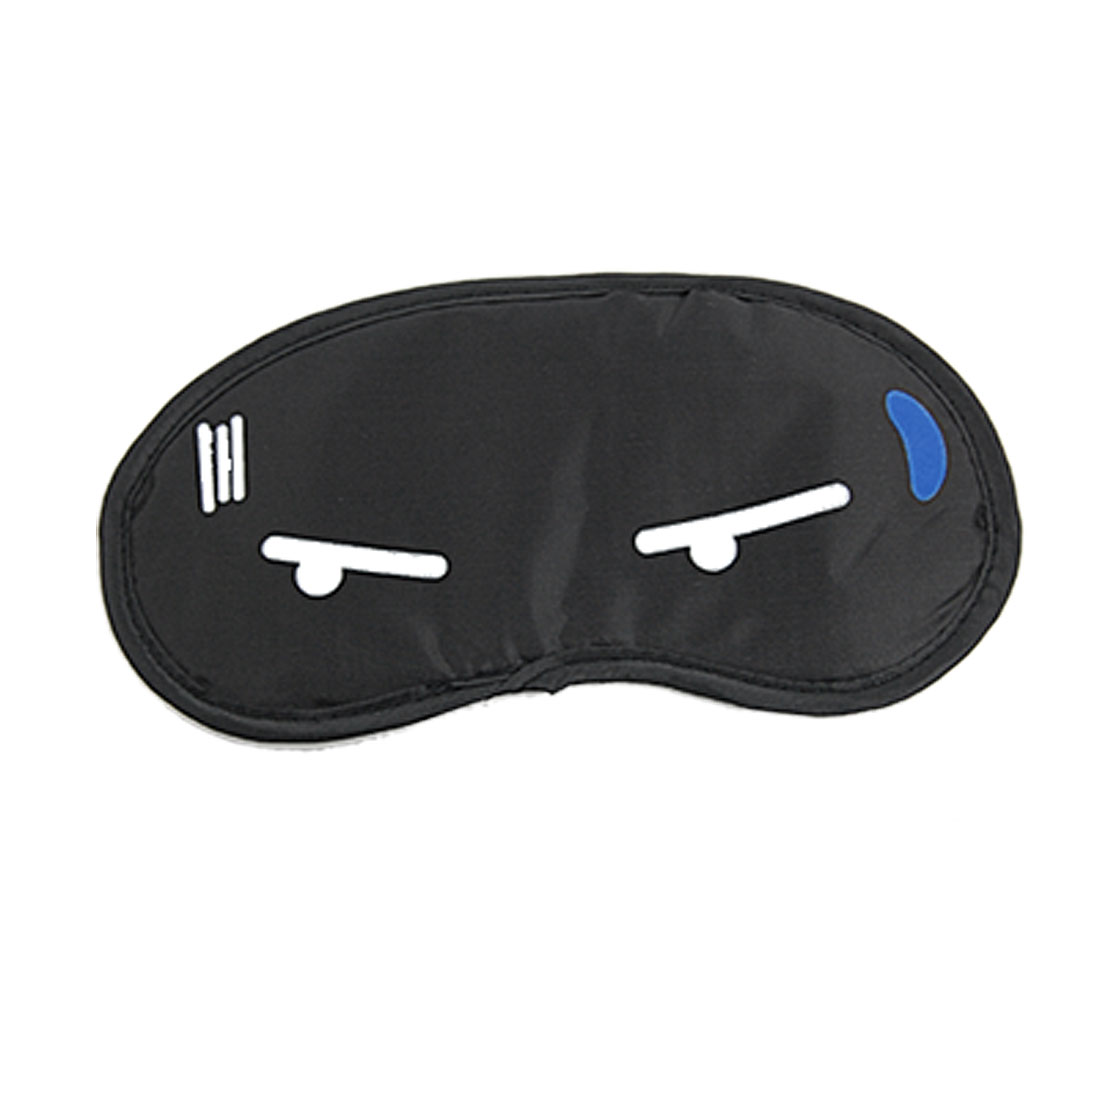 2 Pcs Black Reverse Side Cartoon Sweat Print Eyeshade Eye Cover Sleeping Aid